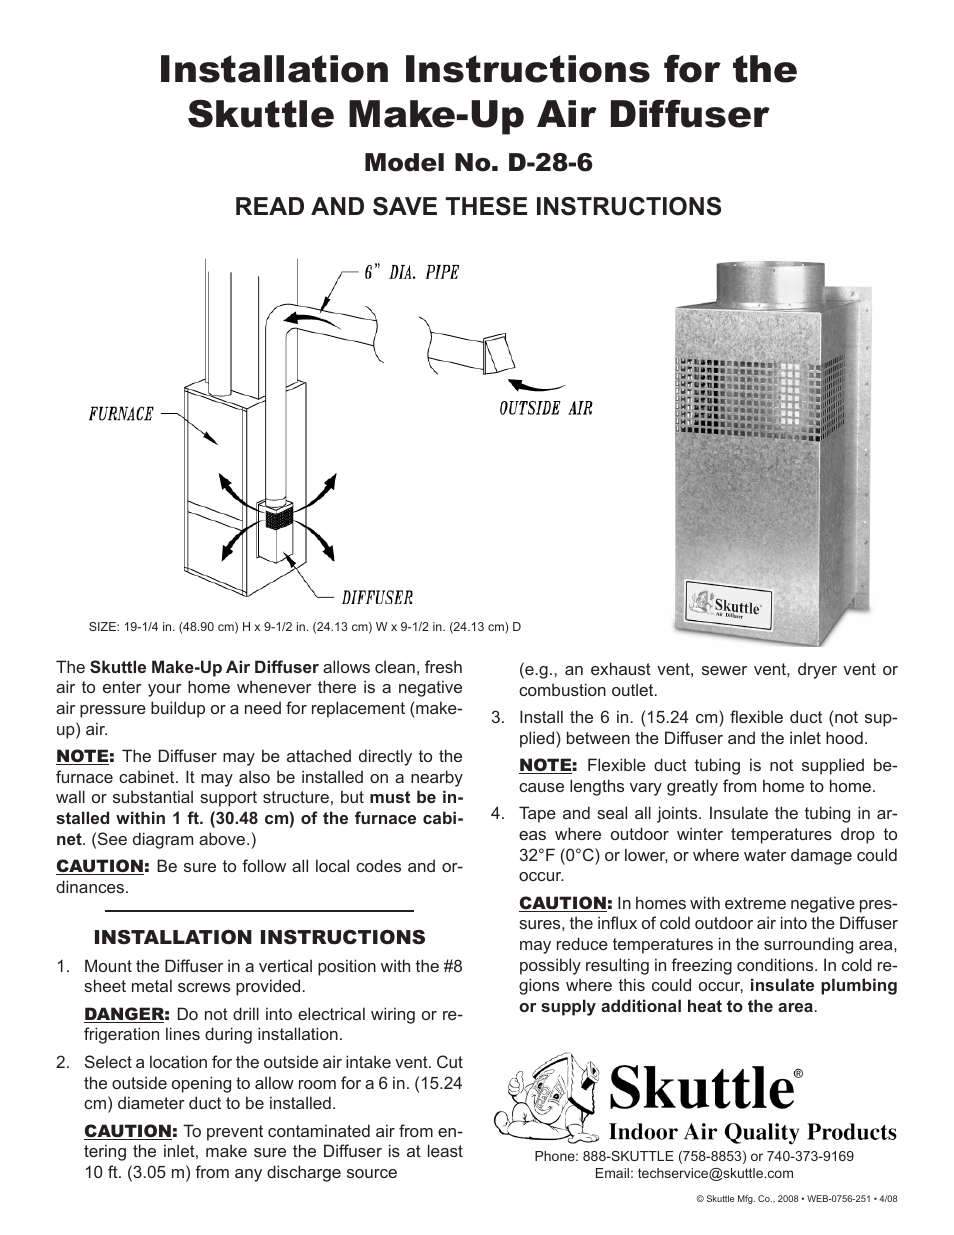 Skuttle Indoor Air Quality Products Skuttle Make-Up Air Diffuser D ...